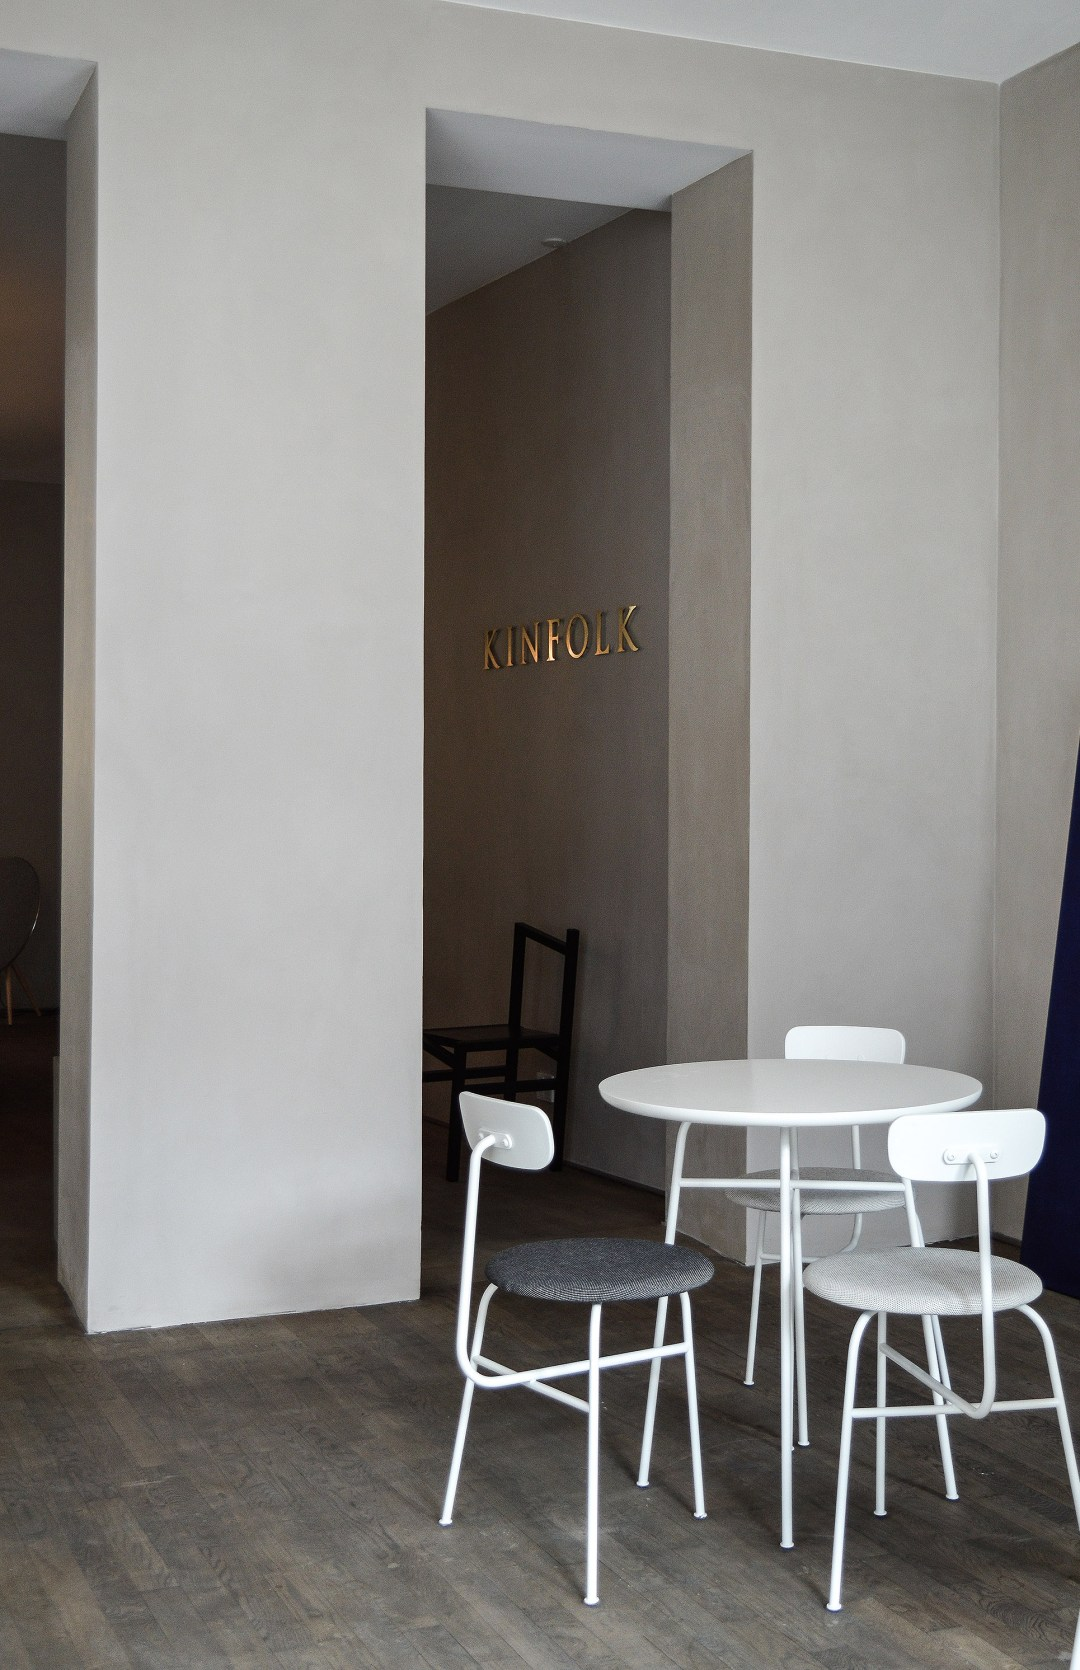 Kinfolk gallery, menu chairs, norm architects, kabe, Copenhagen, kinfolk